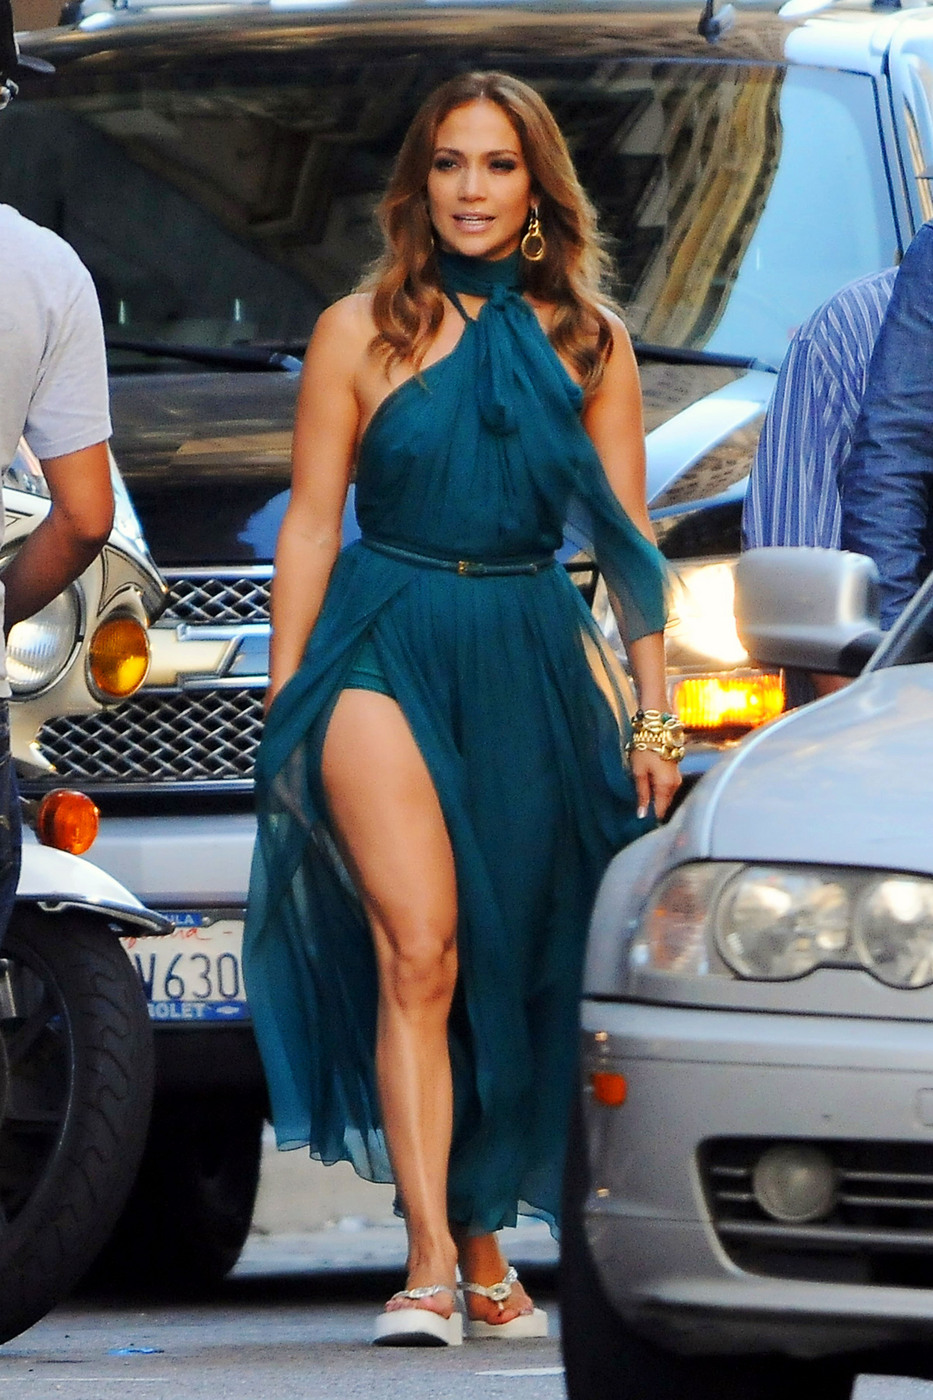 Jennifer Lopez takes over the streets of downtown Los Angeles filming a Fiat commercial in Los Angeles